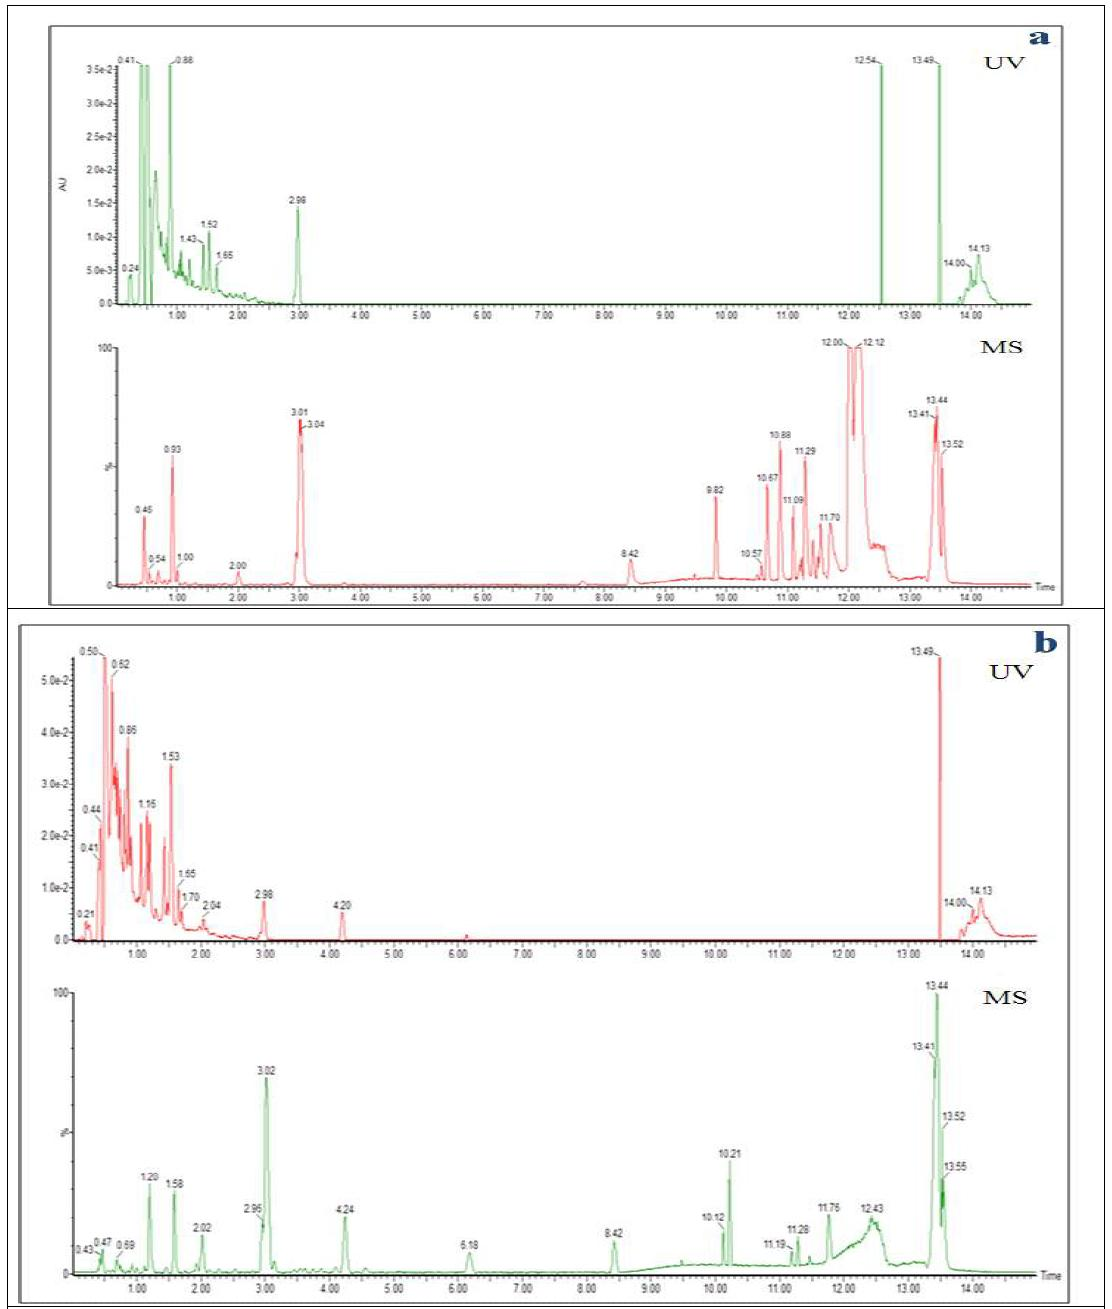 Chromatogram obtained by UPLC-TOF-MS in negative ionization mode from 70% ethanol extracts of raw deoduck (Codonopsis lanceolata )[a], and 5th steaming and fermented deoduck[b]